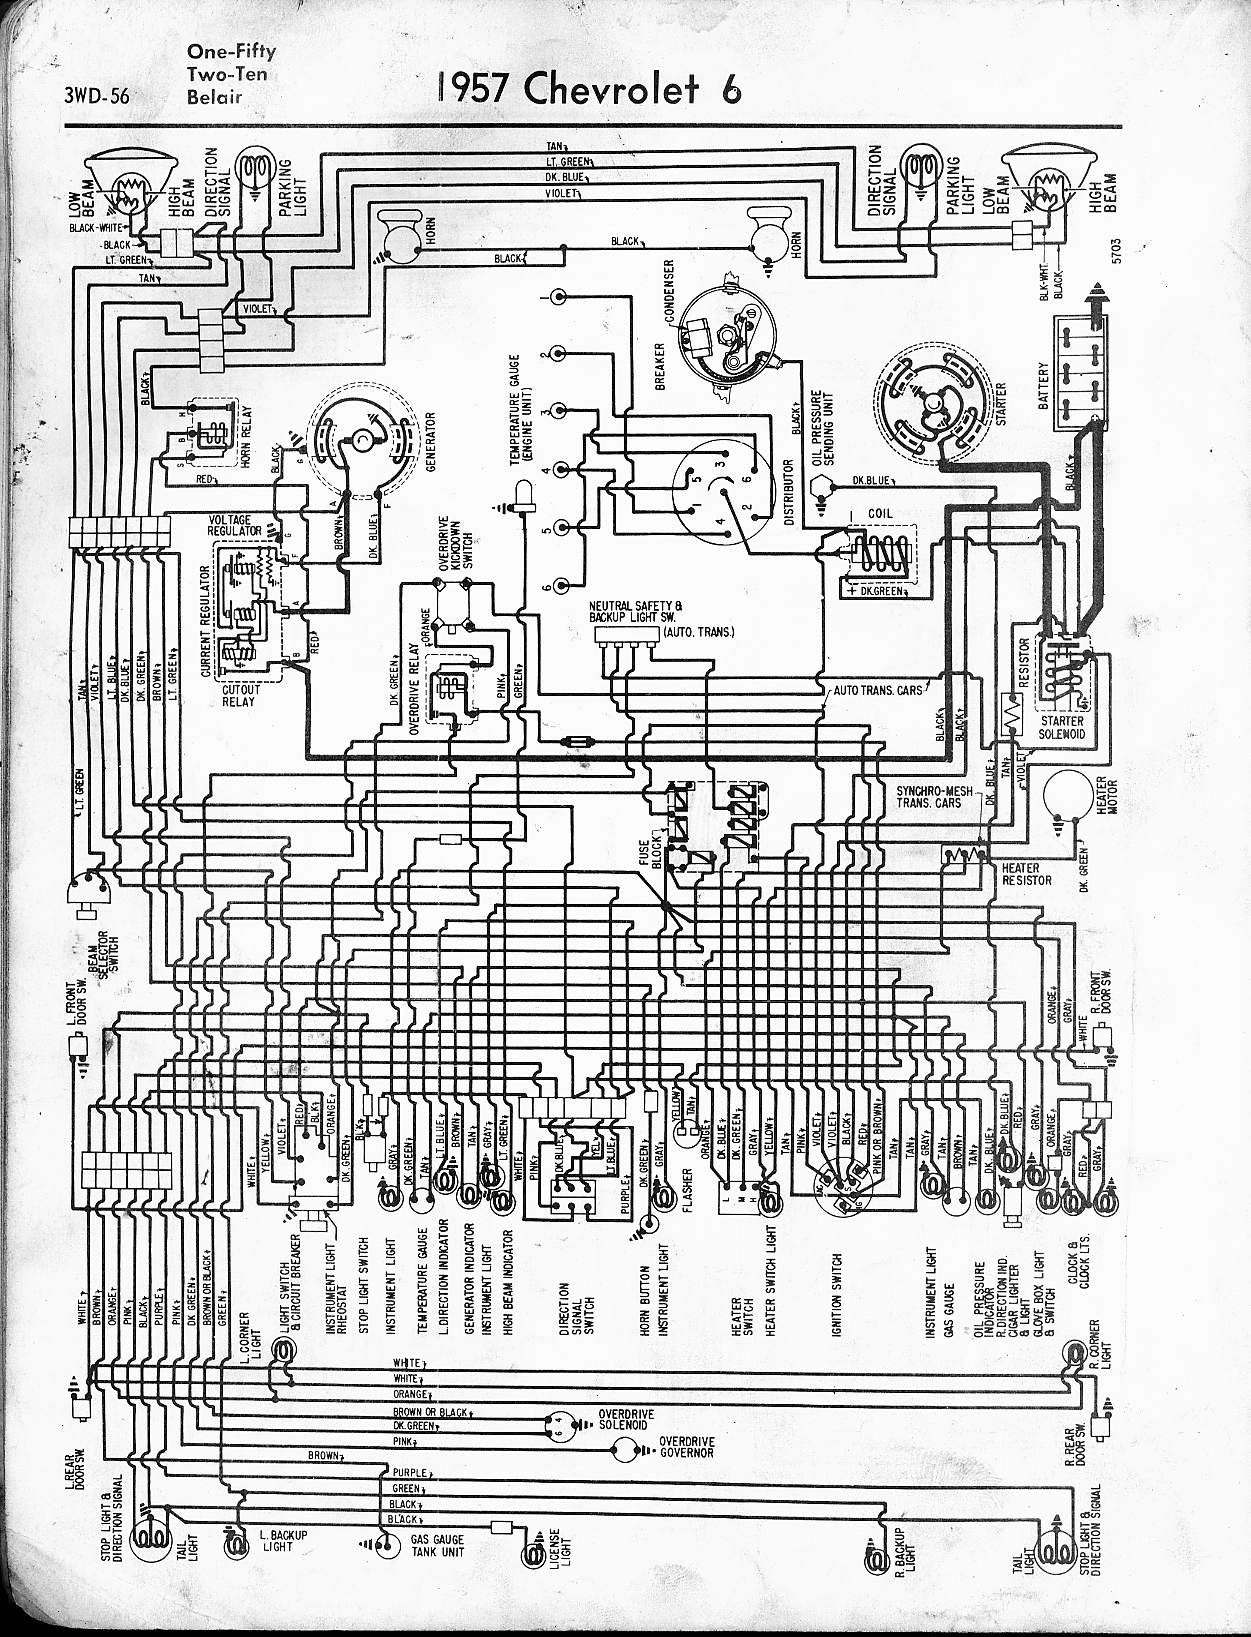 hight resolution of 1957 bel air wiring diagram wiring diagram todays 1977 camaro wiring diagram 57 65 chevy wiring